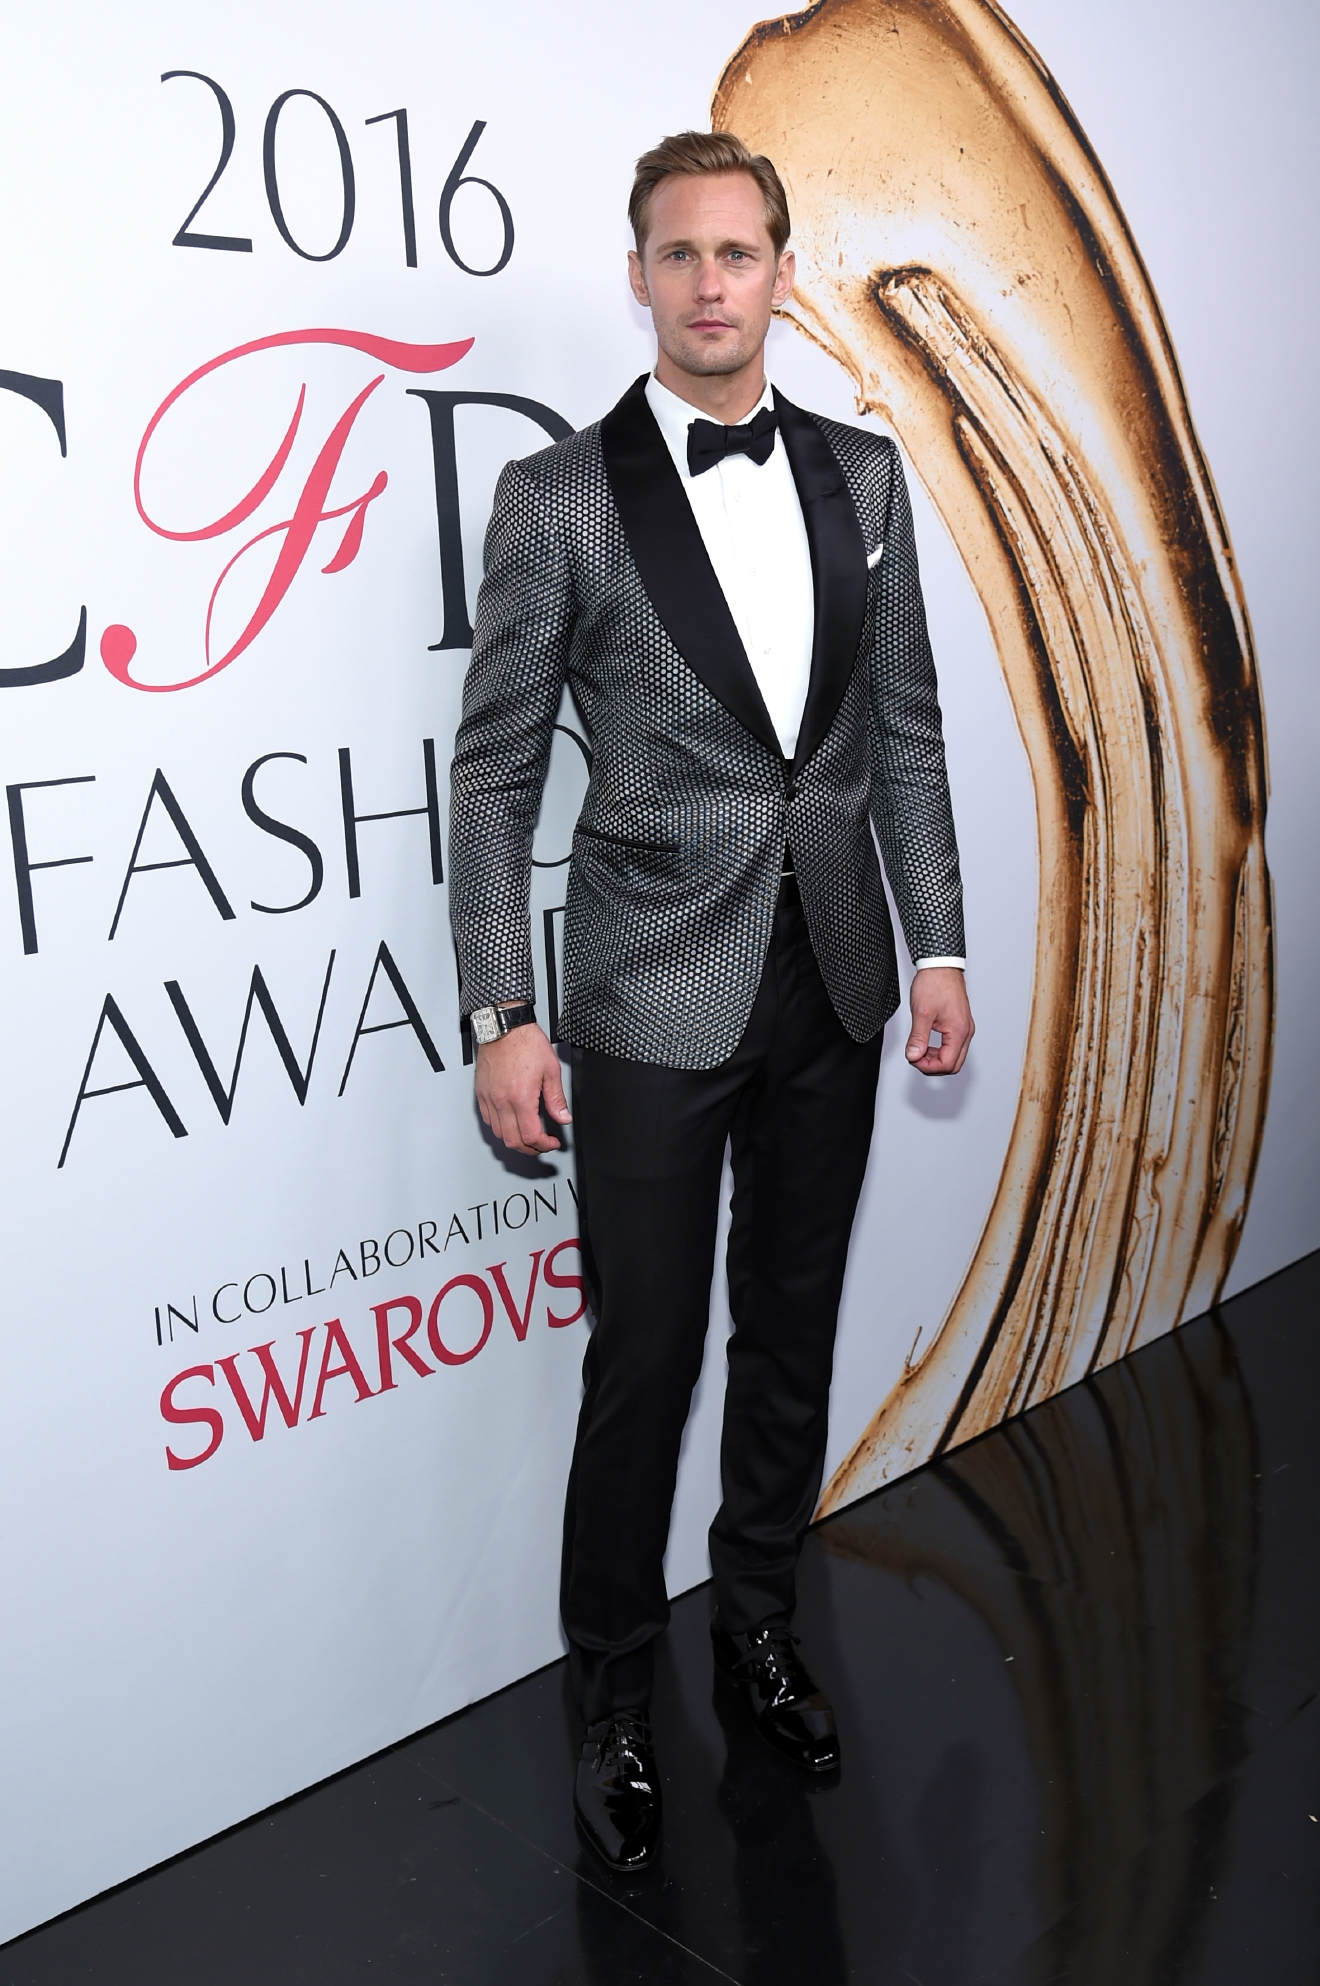 Alexander Skarsgard poses at the CFDA Fashion Awards at the Hammerstein Ballroom on Monday, June 6, 2016, in New York. (Photo by Evan Agostini/Invision/AP)